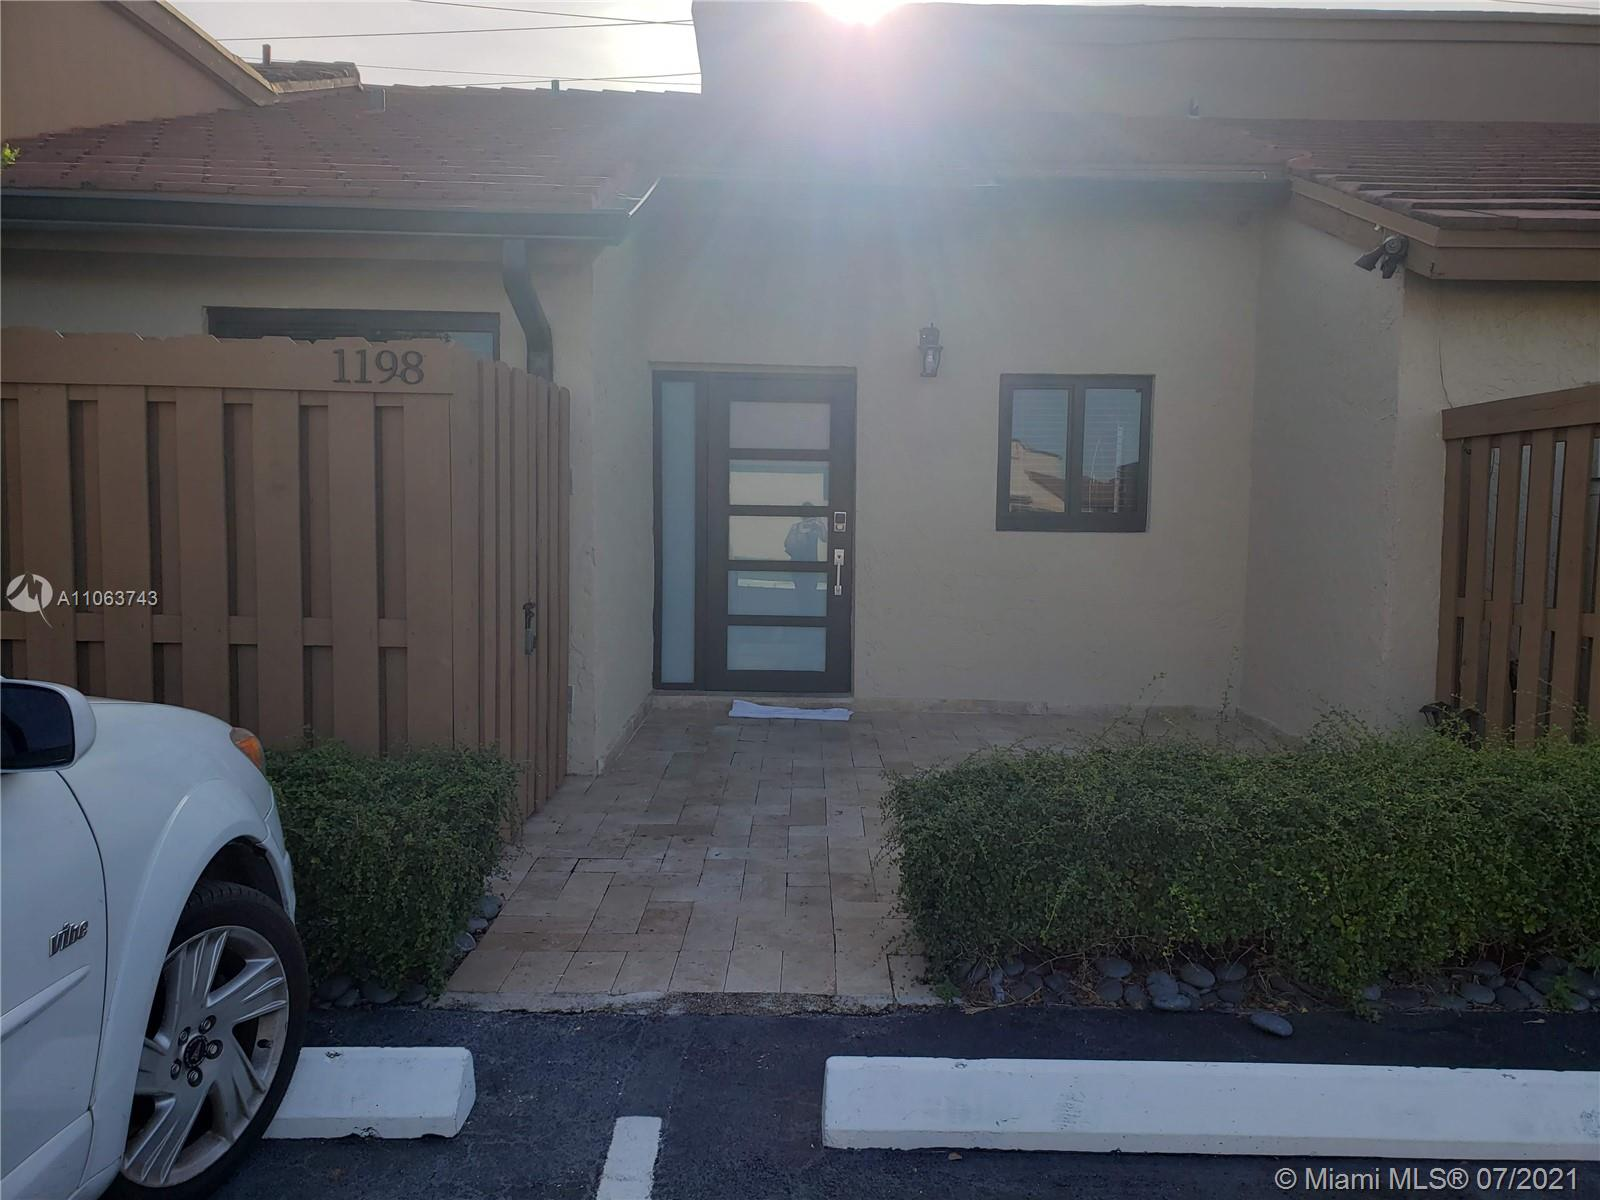 """Beautiful Townhouse in the Community of Tamiami lakes!!!  Townhouse has 2 Bedrooms, 2 Bathrooms, New Roof, New A/C, Impact Windows/Door, Washer & Dryer + Titan Water Heater!!!   Master Bedroom has its own bathroom and a large walk-in closet.   Complex offers security 24/7, Tennis Court, Playground, lots of green areas and gated doors.   LOW HOA FEES….Great for first time home buyers or investors.  """"Sold As Is"""".   ***SHOWINGS BY APPOINMENT ONLY  - Property is currently Tenant-Occupied and cannot be disturbed without prior notice***  Must have Preapproval Letter and D.U. Report or Proof of Funds prior to the showing.  Bring your Buyers!!! It will not last!!"""